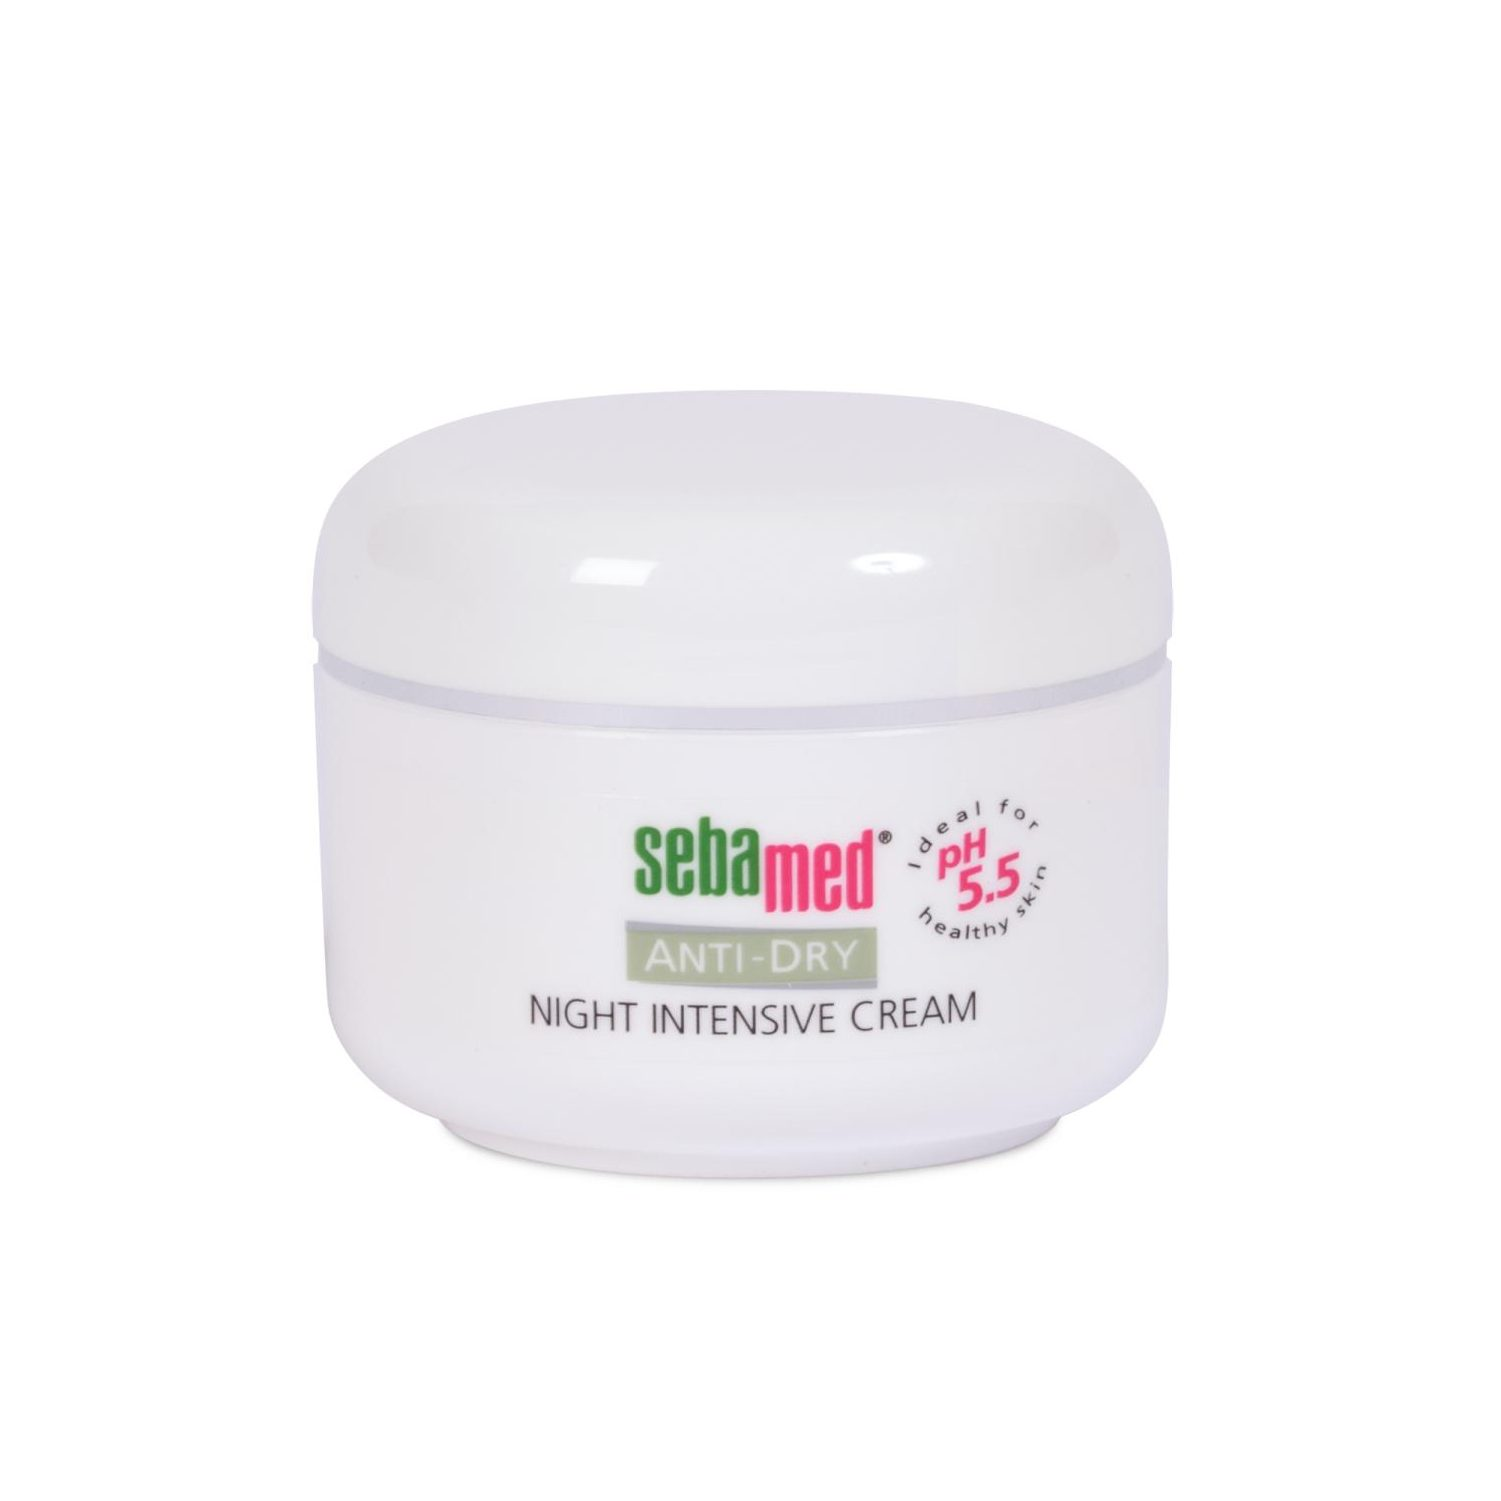 Sebamed Anti-dry night cream